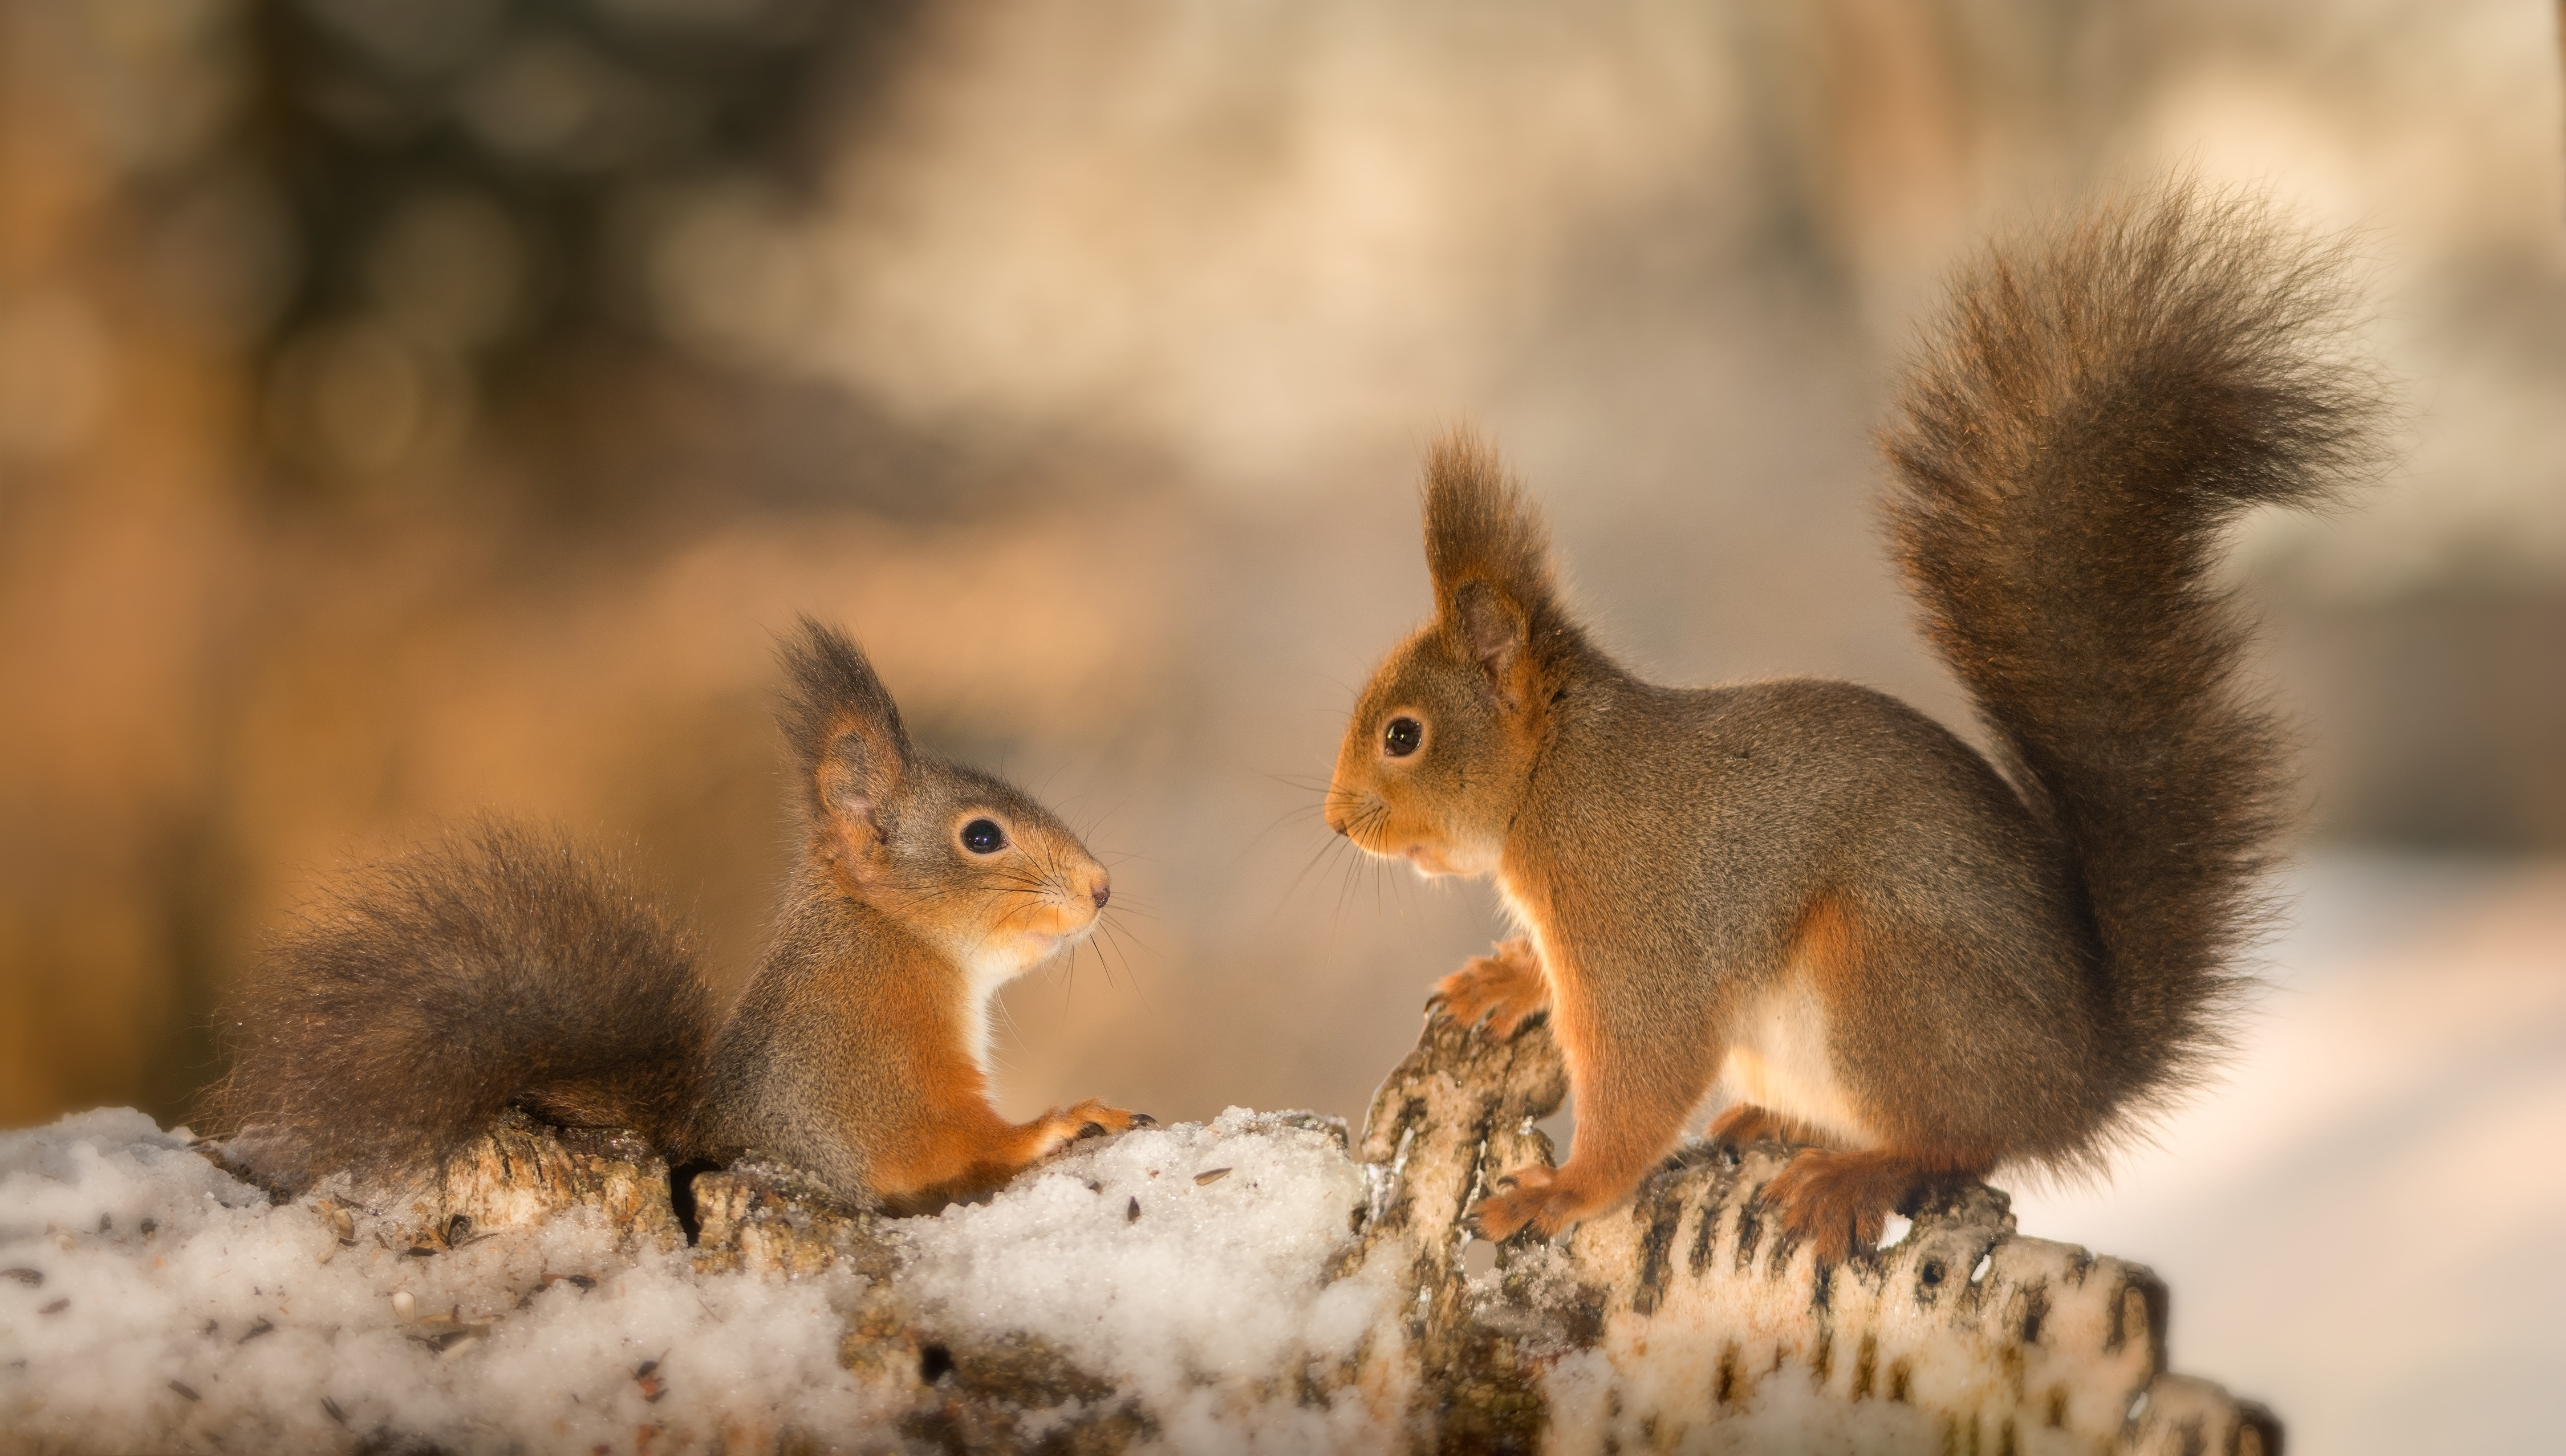 Stock photo of squirrels having a conversation to illustrate good supply chain etiquette.